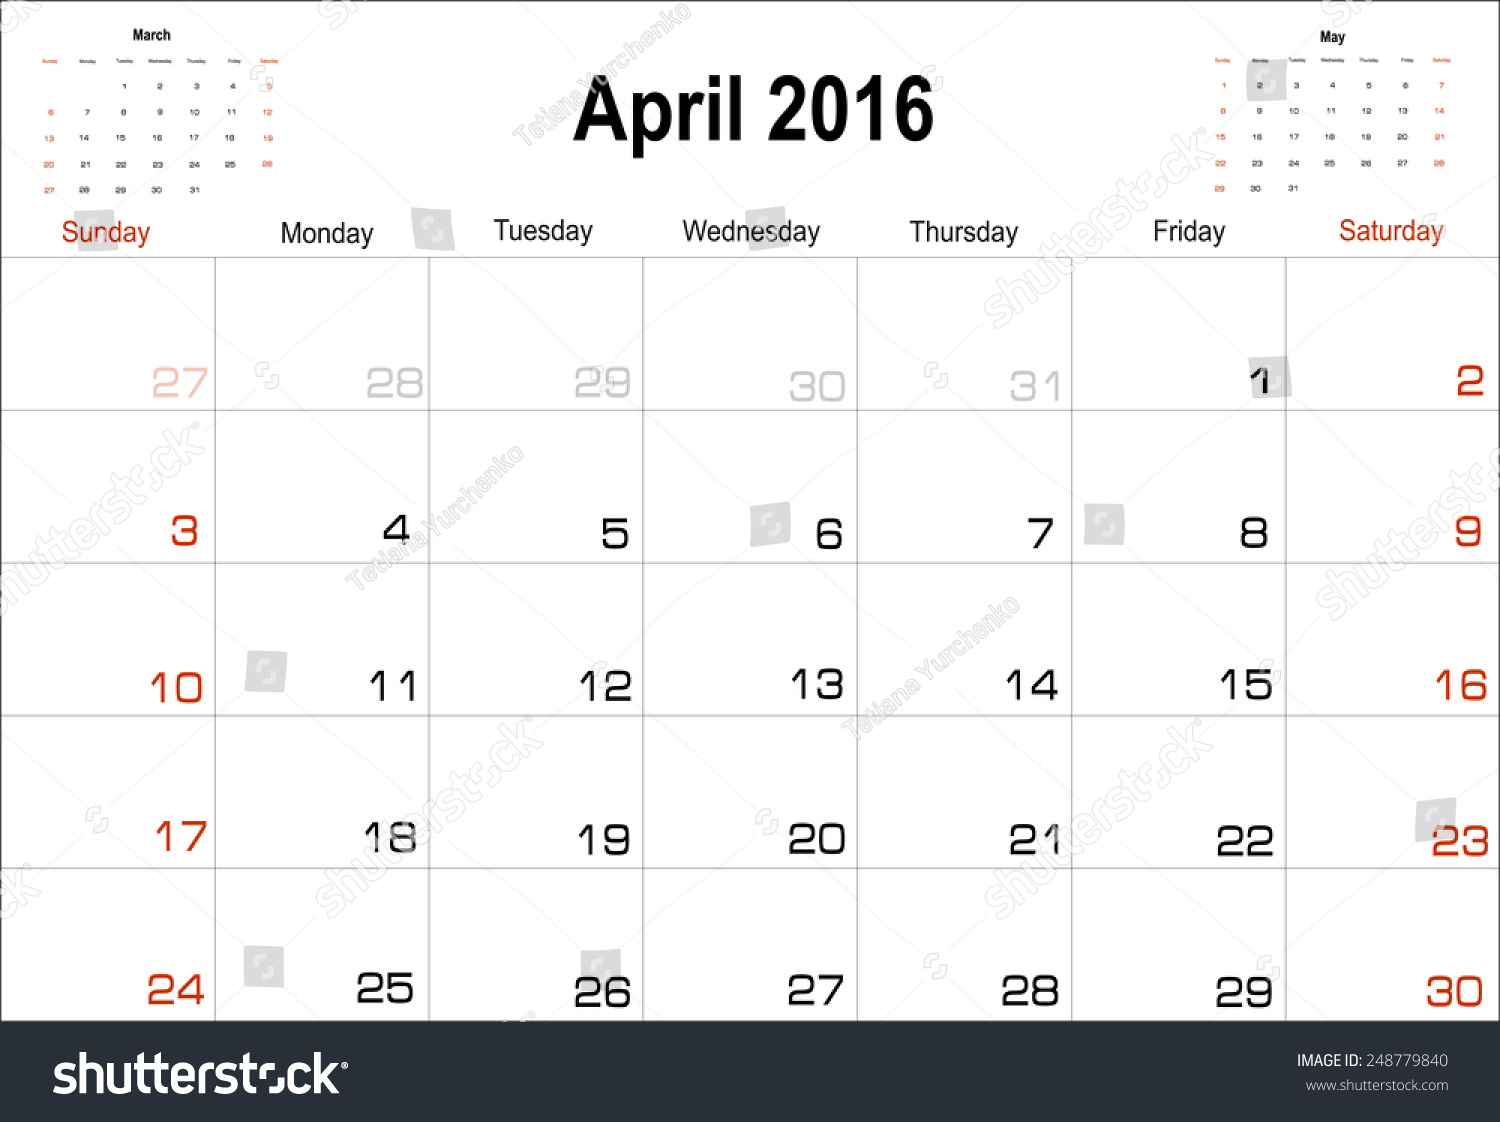 Calendar April Vector : Vector planning calendar april  shutterstock